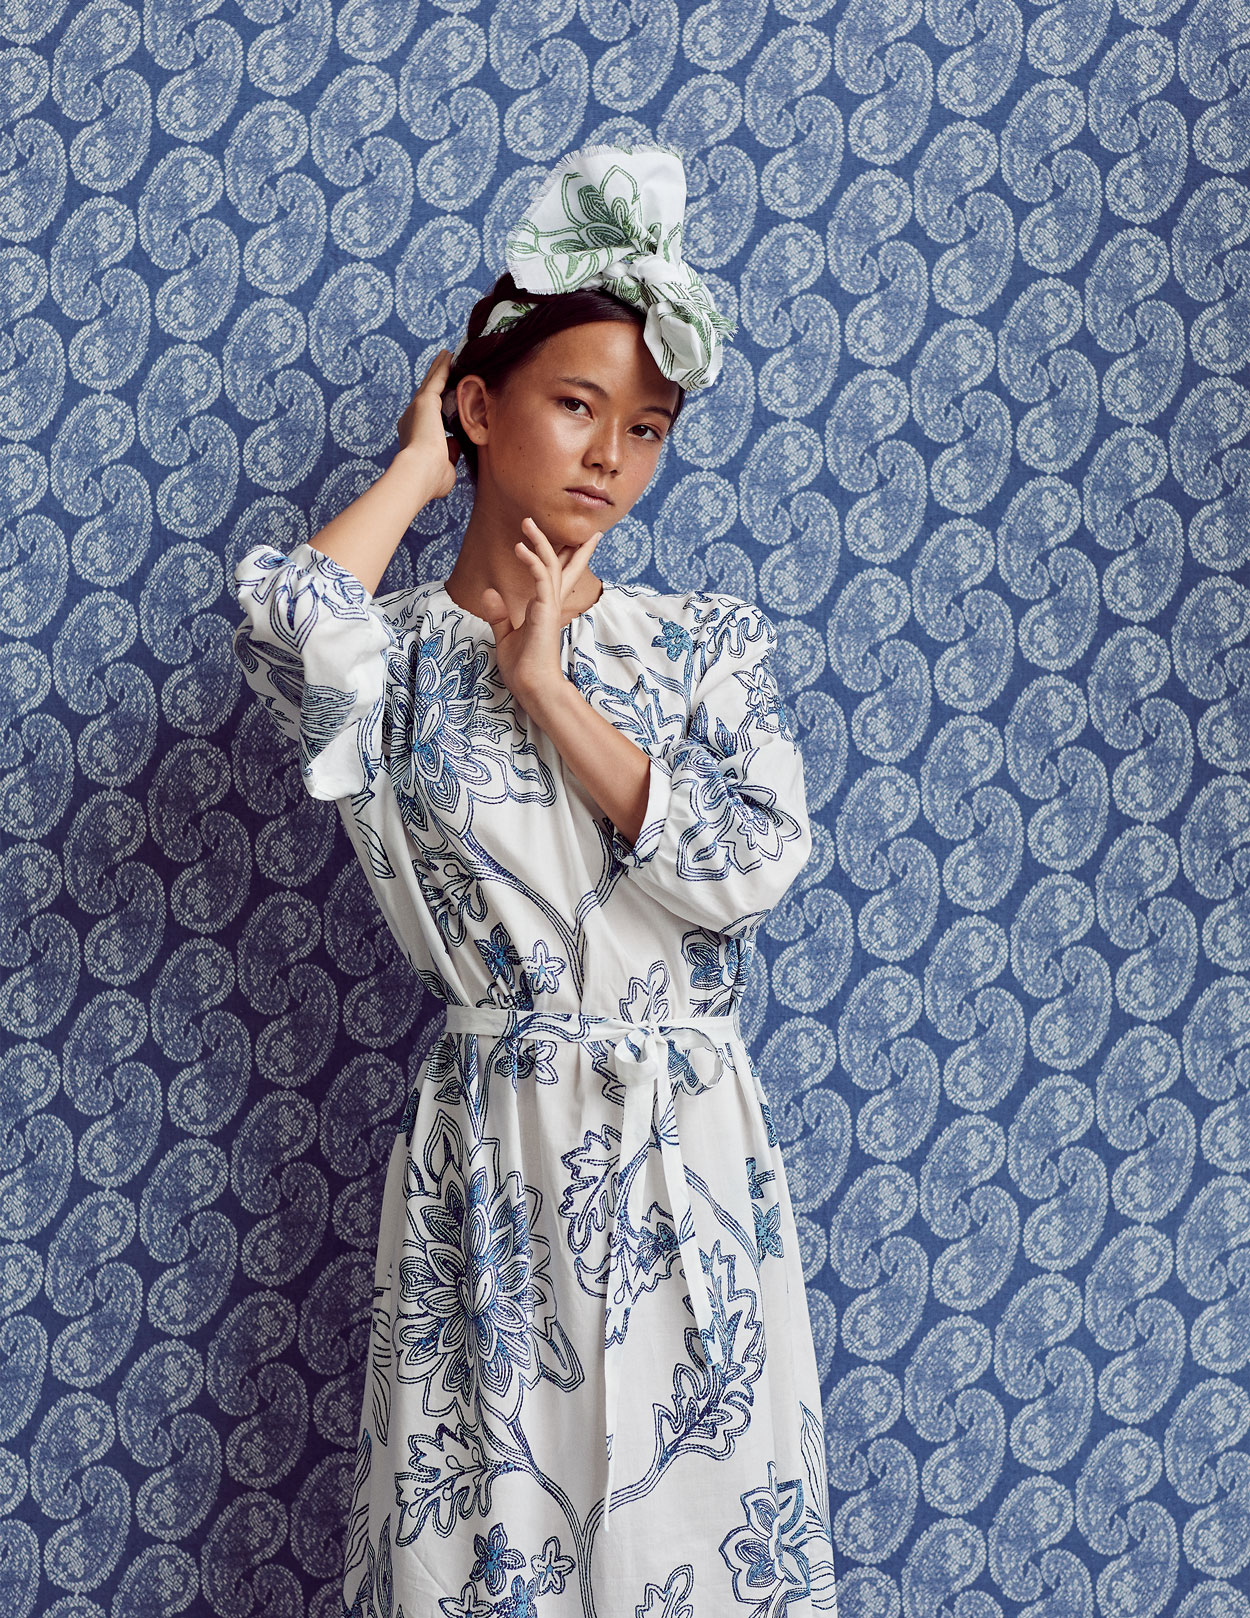 Wallpaper - Worn Paisley reverse in denim :: Fabric - Maharini's Garden in royal blue, custom printed on cotton poplin for this shoot.